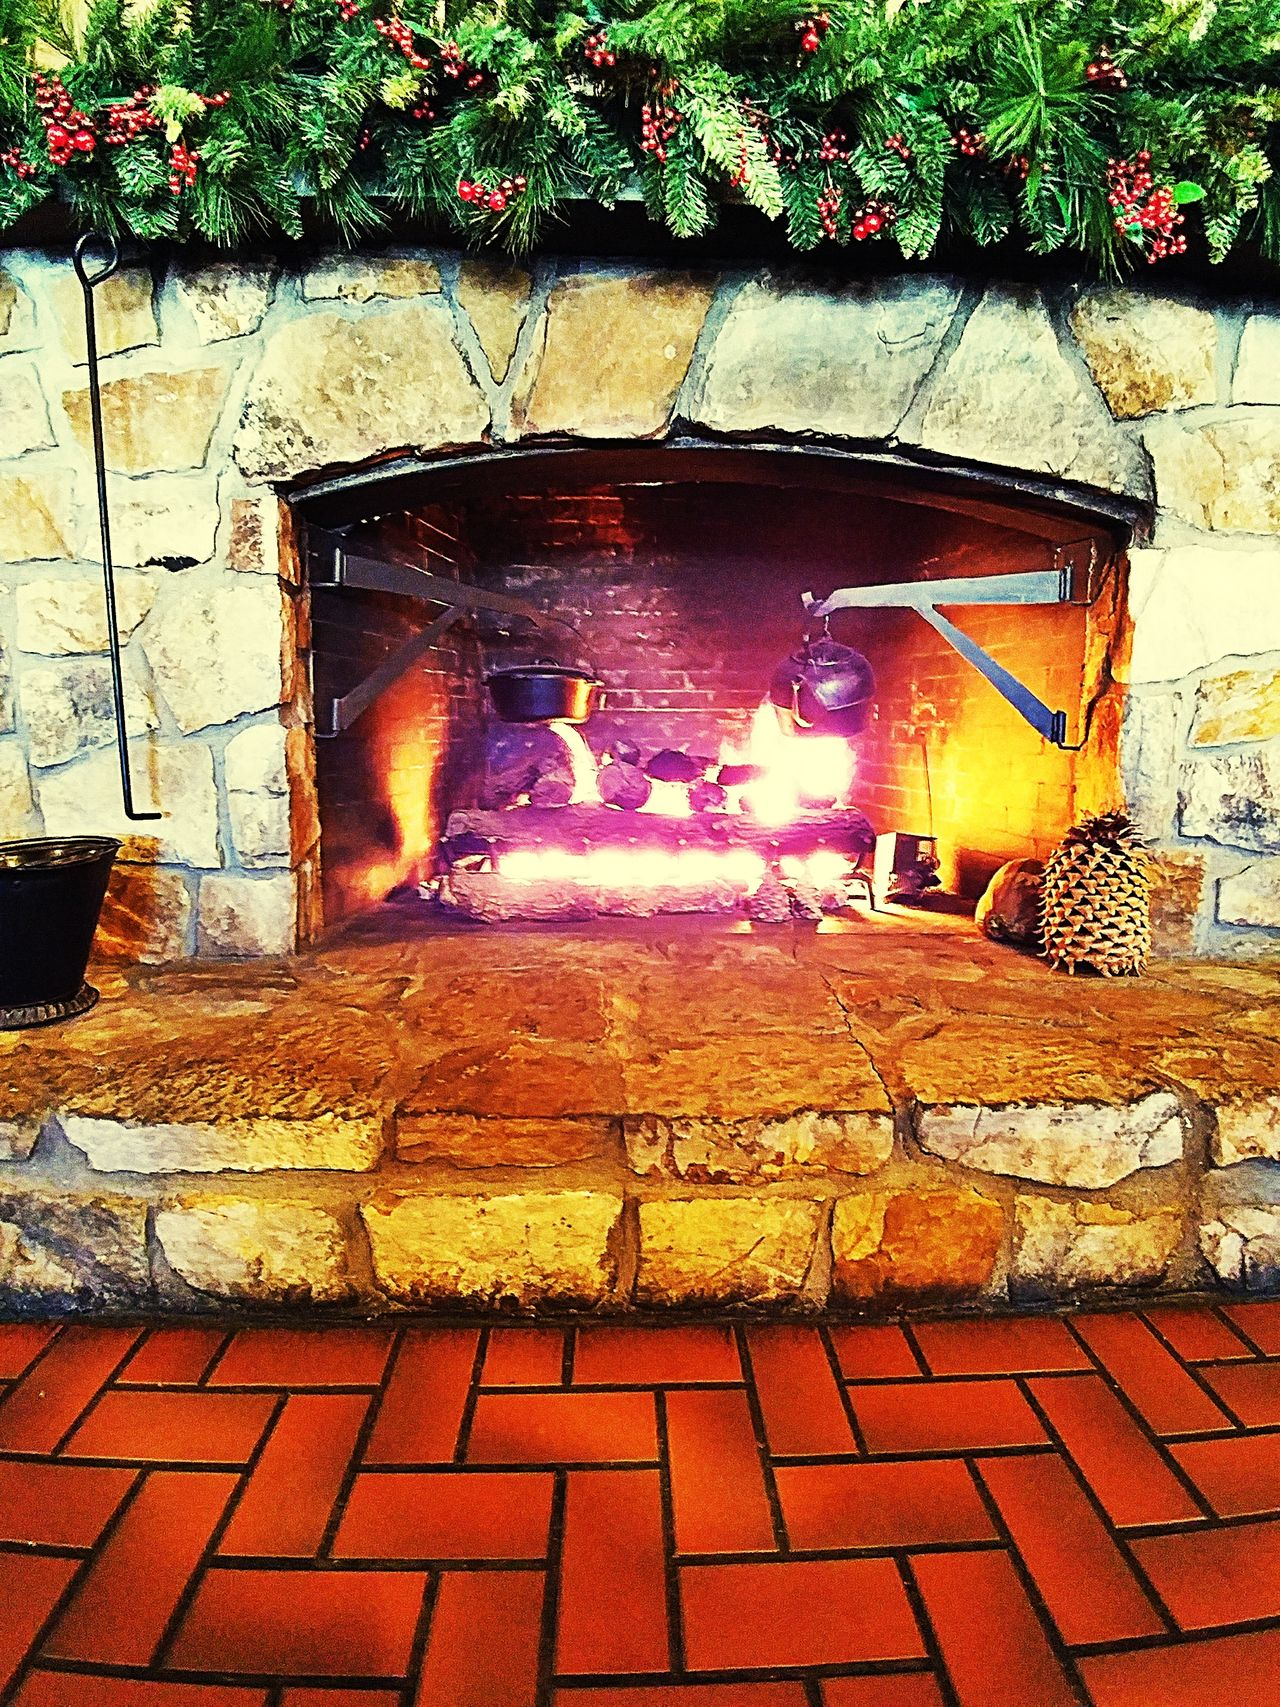 Fire Burning Flame No People Heat - Temperature Christmas Outdoors Illuminated Night Check It Out Fire Place Fire - Natural Phenomenon Architecture